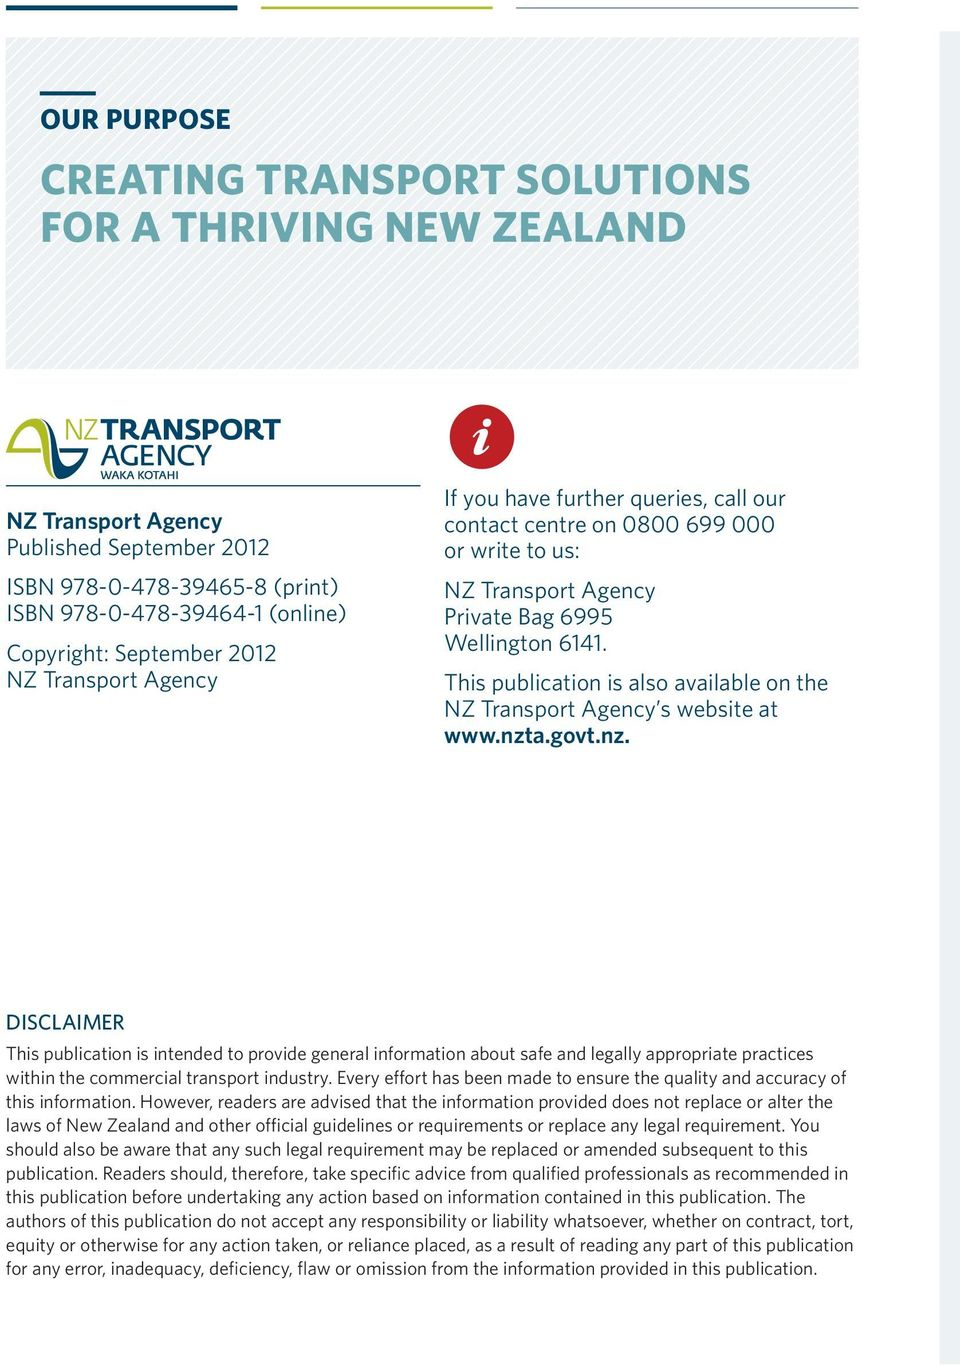 This publication is also available on the NZ Transport Agency s website at www.nzt